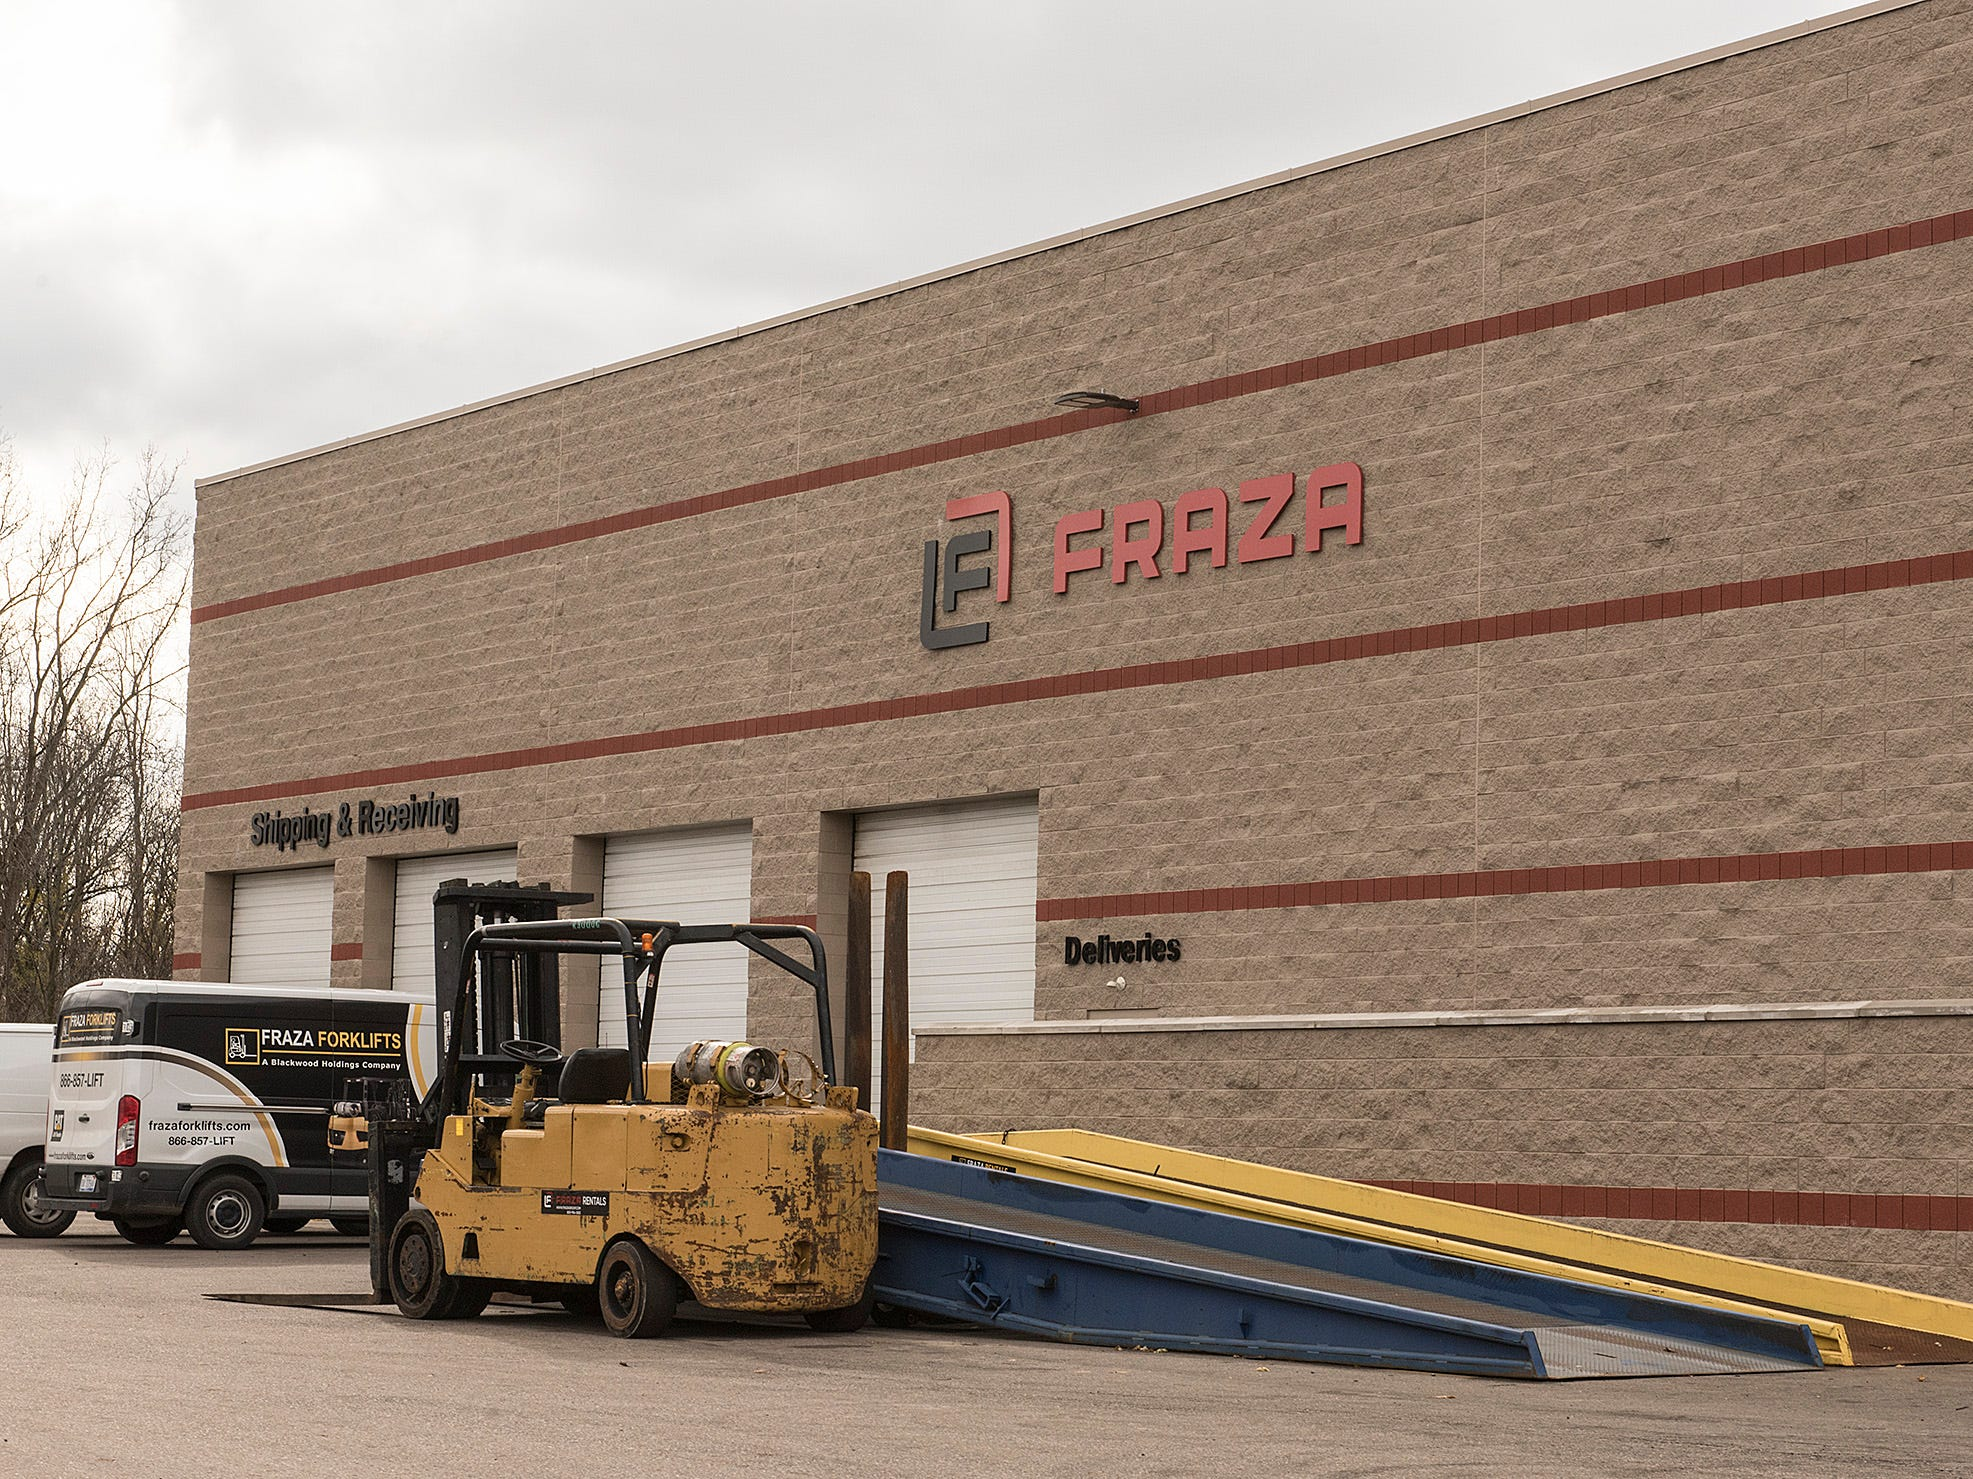 Fraza is a big name in forklifts in metro Detroit.